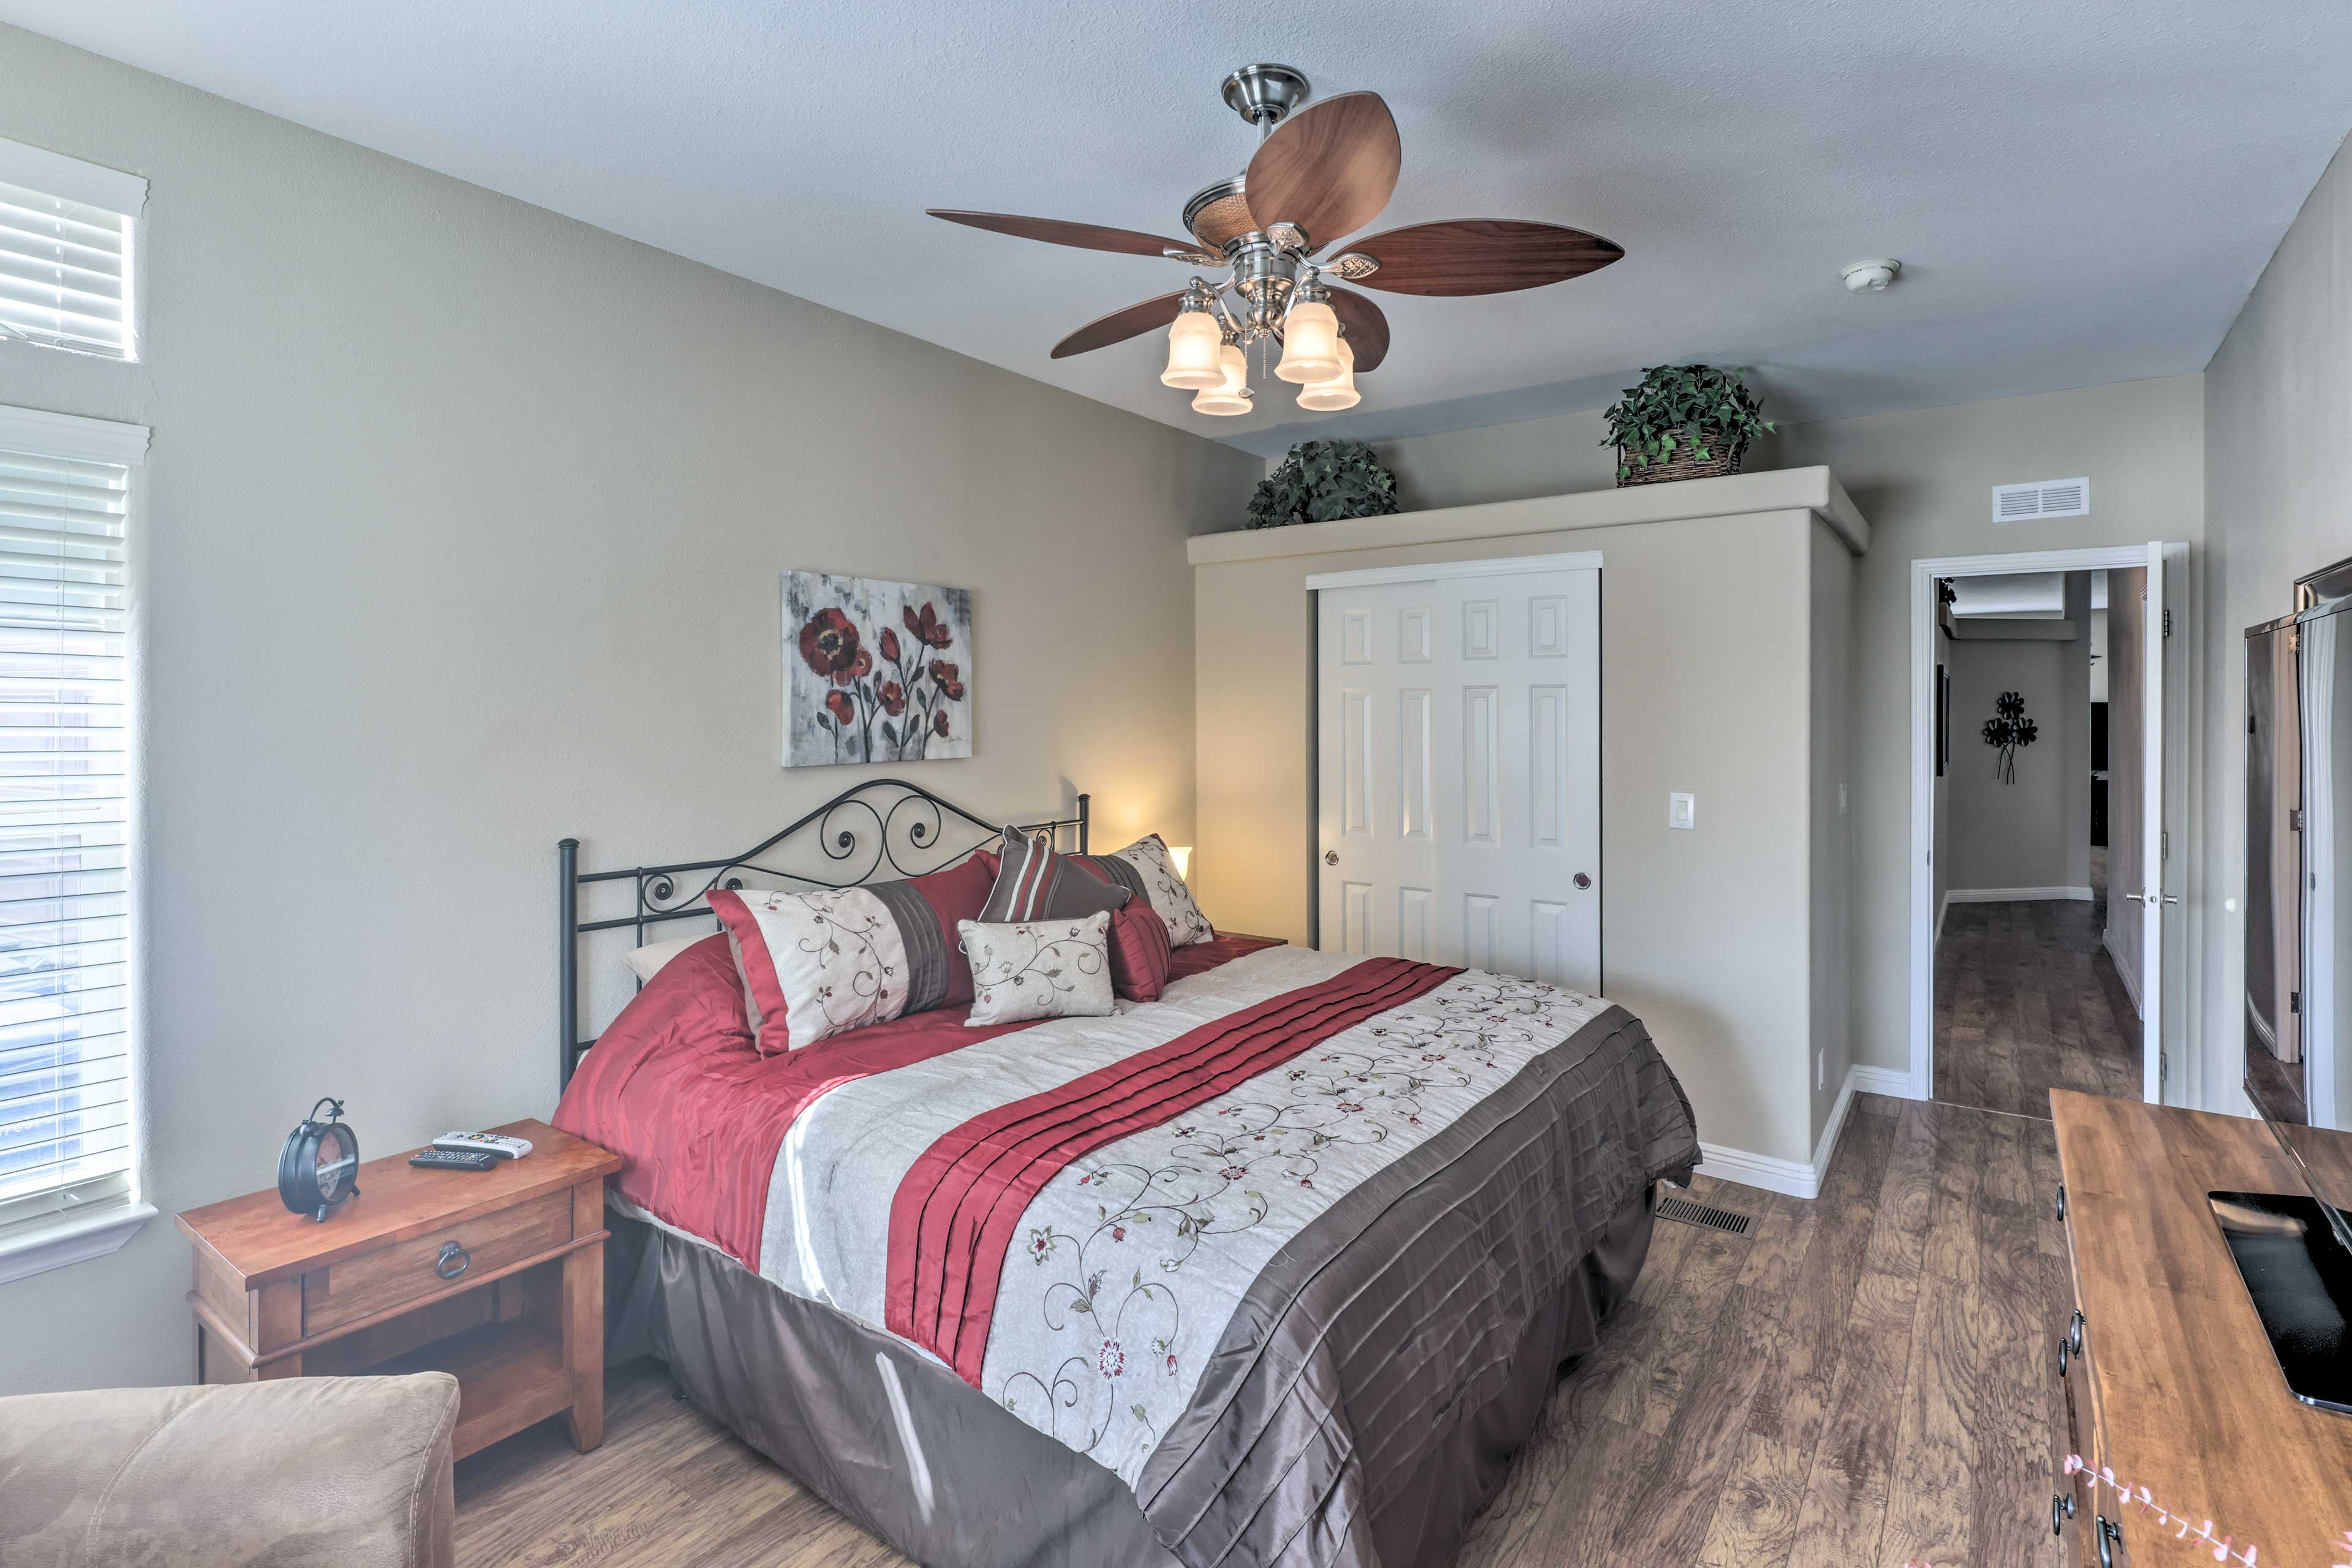 There is a king bed awaiting you in the master bedroom.